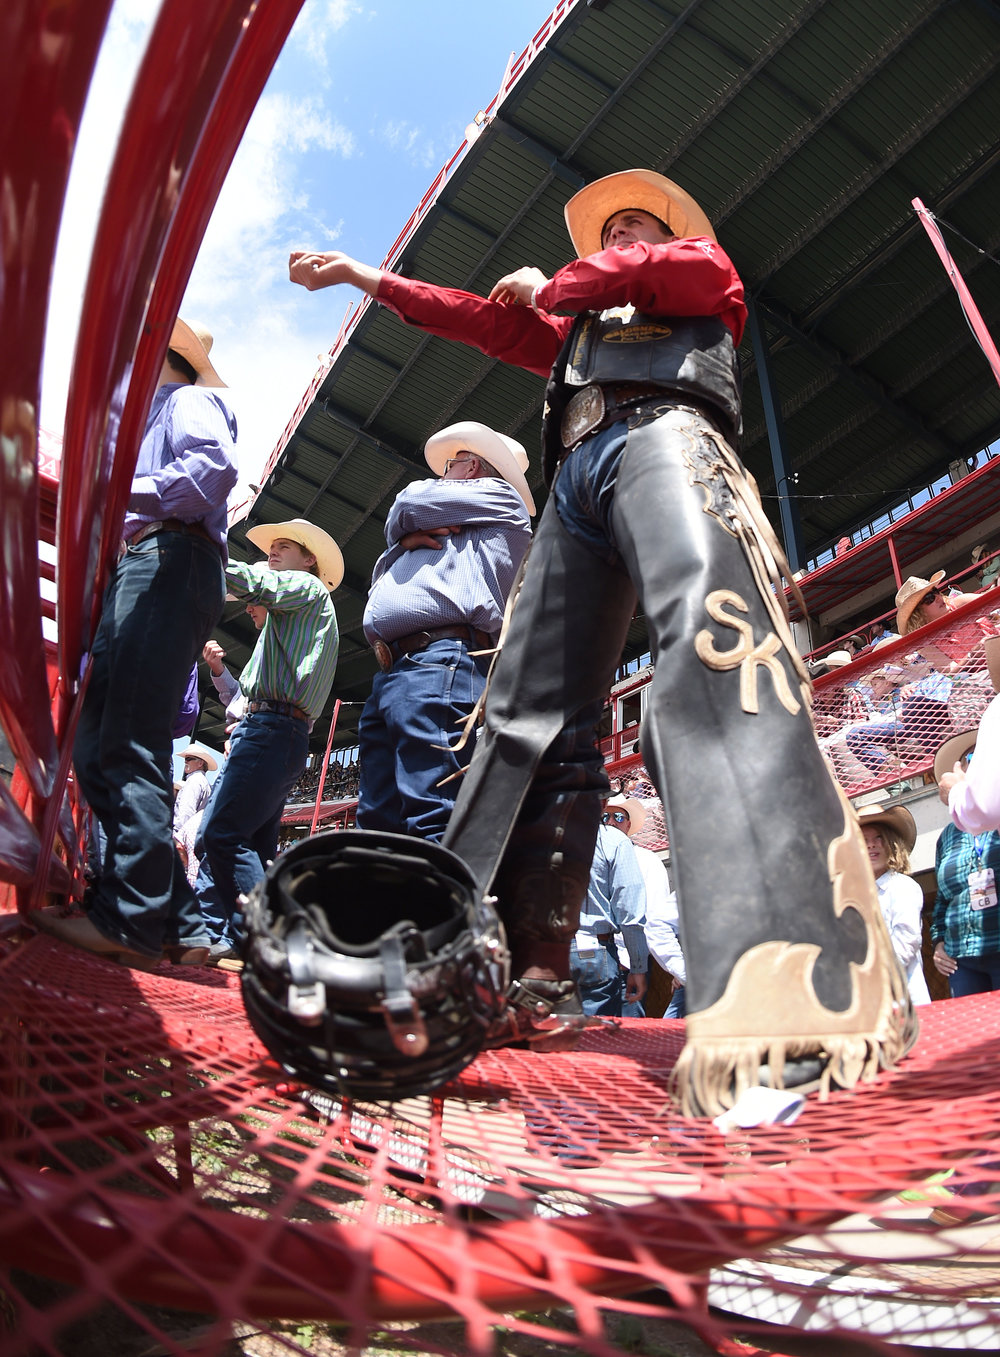 Bull riding champion Sage Kimzey, from Strong City, Oklahoma, prepares for his ride behind the bucking chutes during the 6th performance at the 122nd Cheyenne Frontier Days Rodeo at Frontier Park in Cheyenne, Wyoming Wednesday, July 25, 2018.